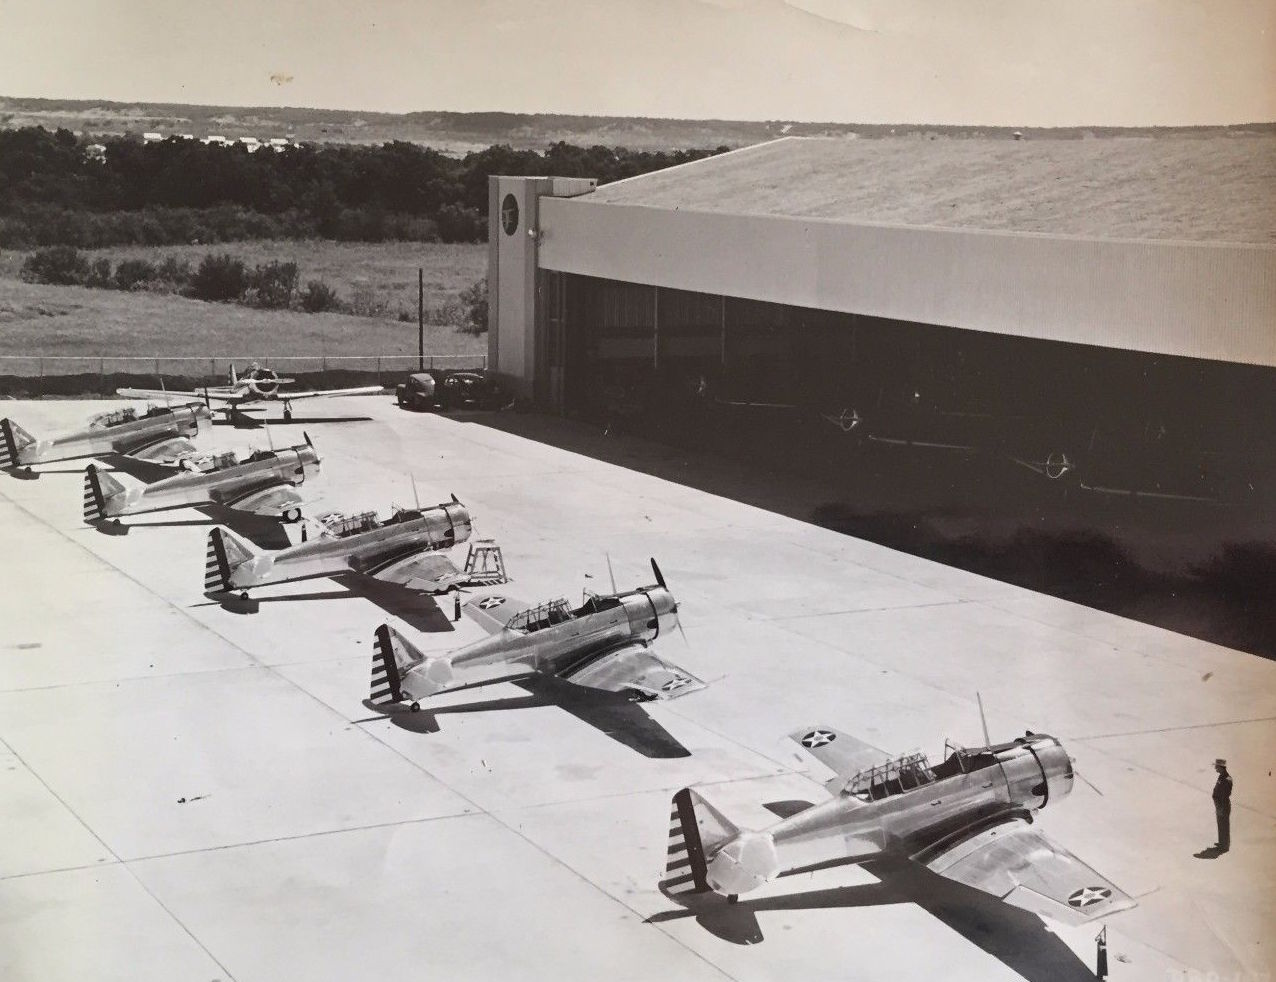 Adjacent to the main Plant building was a storage Hangar for AT-6s awaiting delivery. Texans were amazed to read about the 300 foot wide door which allowed the aircraft to access the ramp. (Image from the CAF Collection)